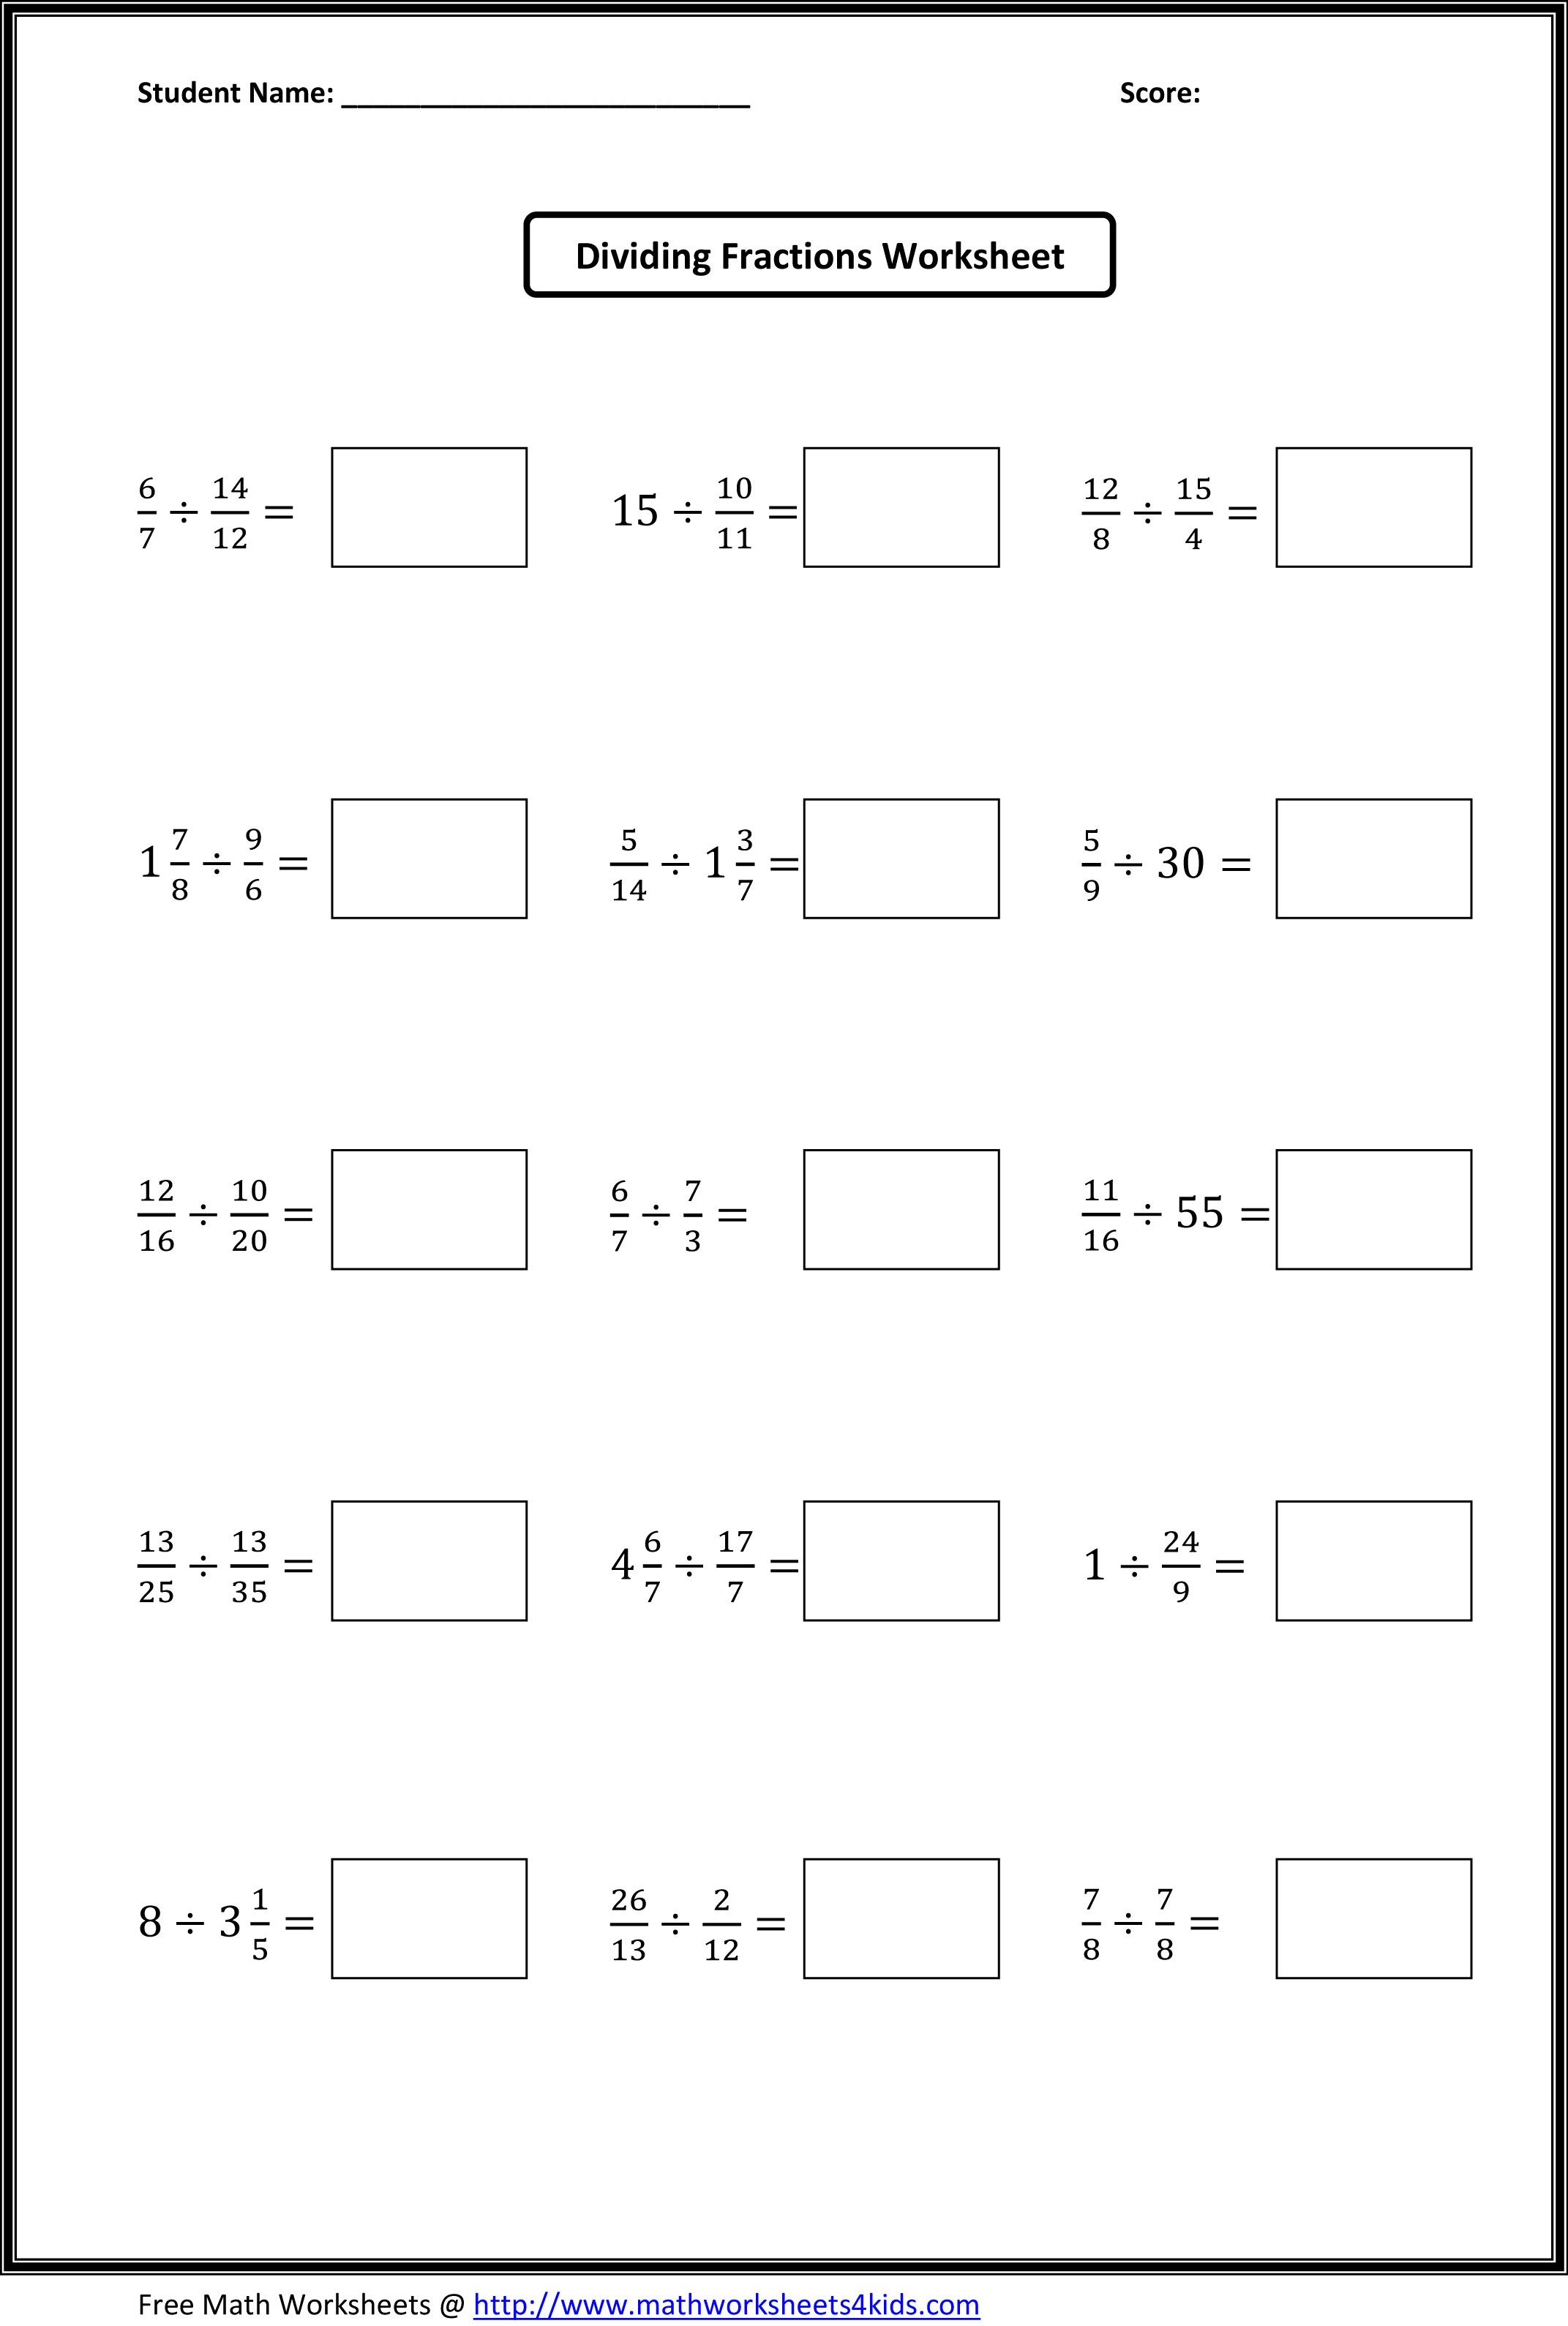 Worksheets Beginning Fractions Worksheets dividing fractions worksheets whats new pinterest worksheets